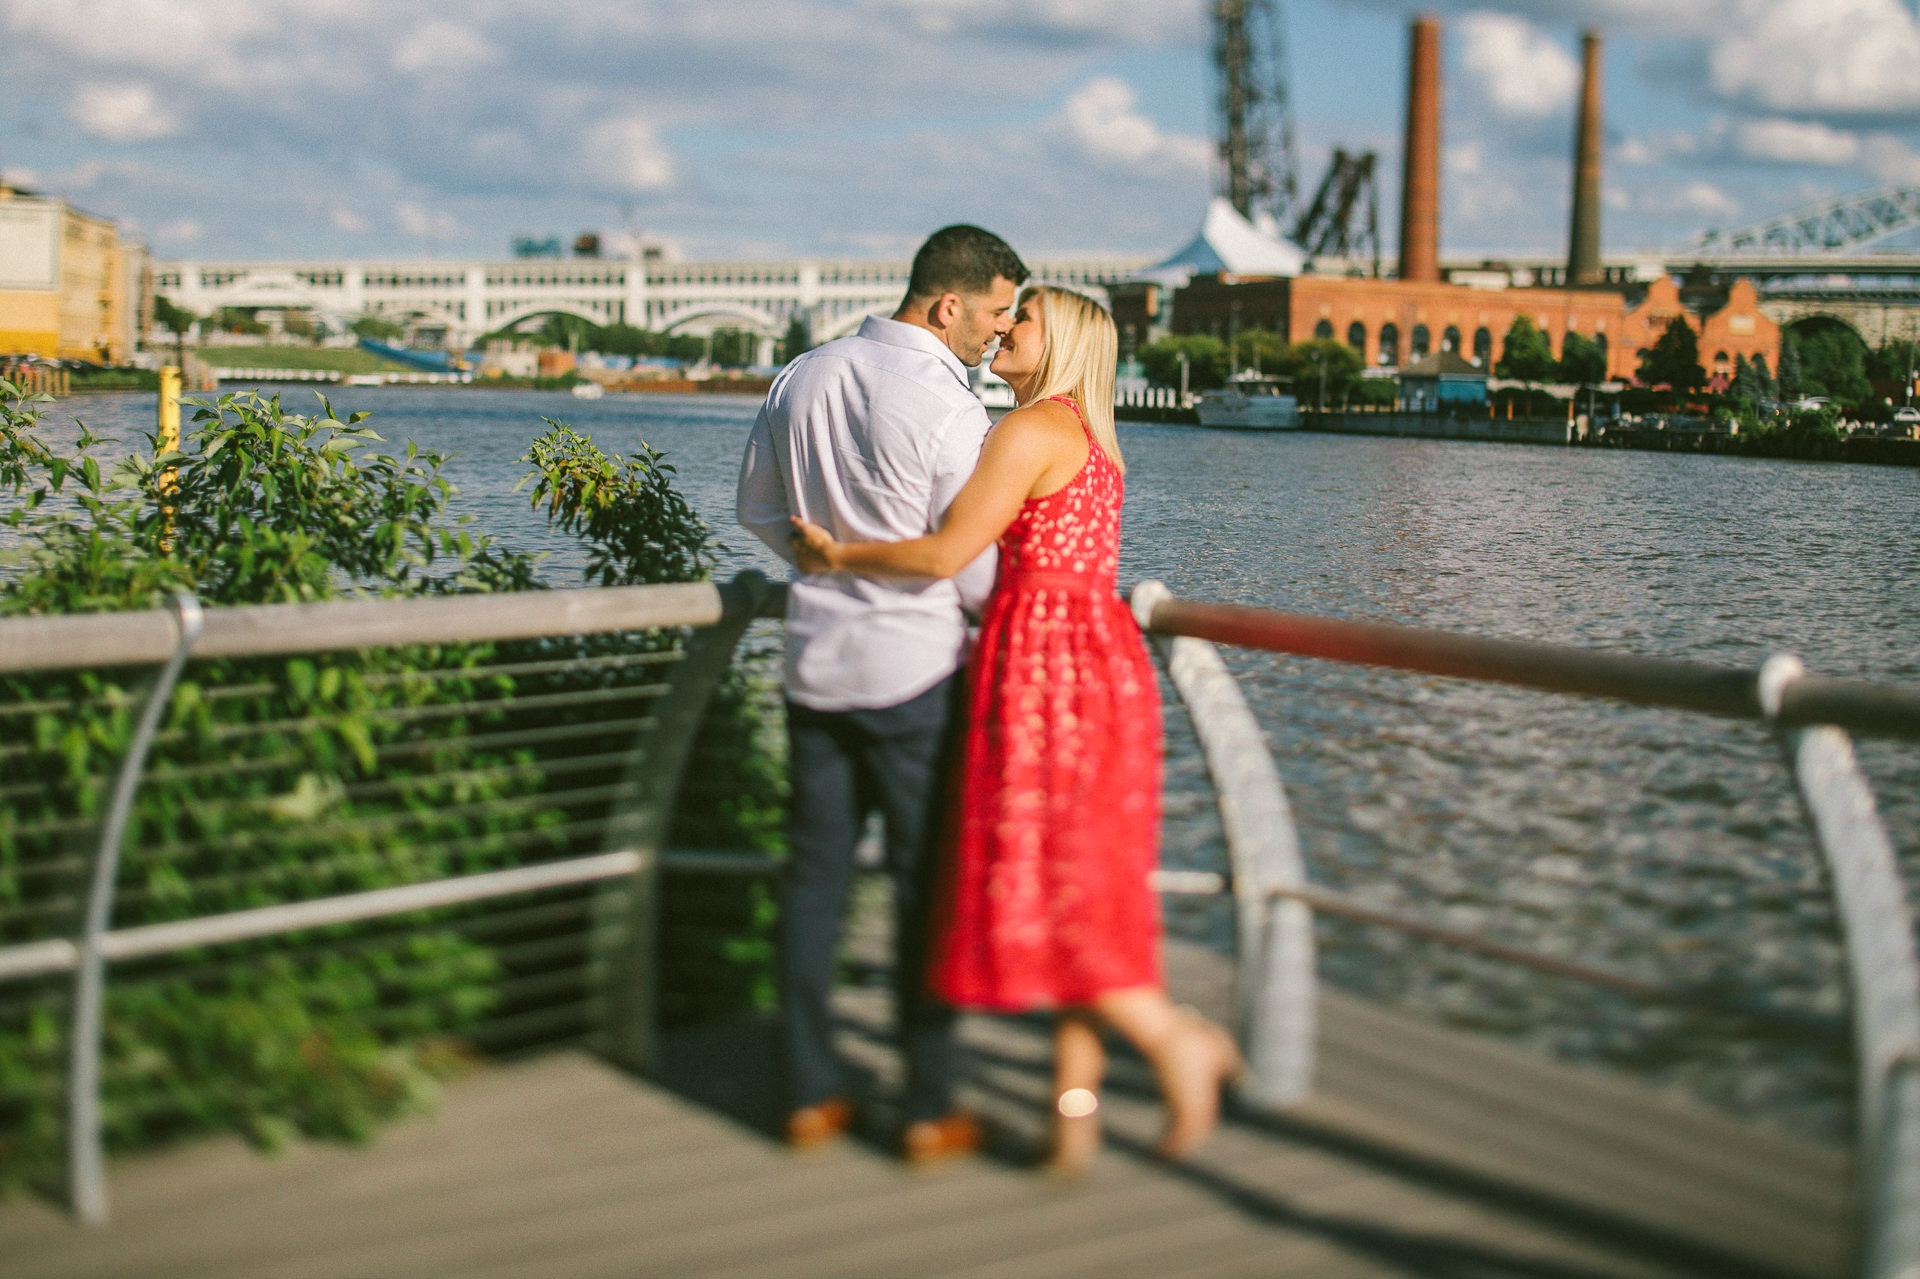 Sara Shookman Angelo DiFranco Engagement photos in cleveland by too much awesomeness photography 5.jpg